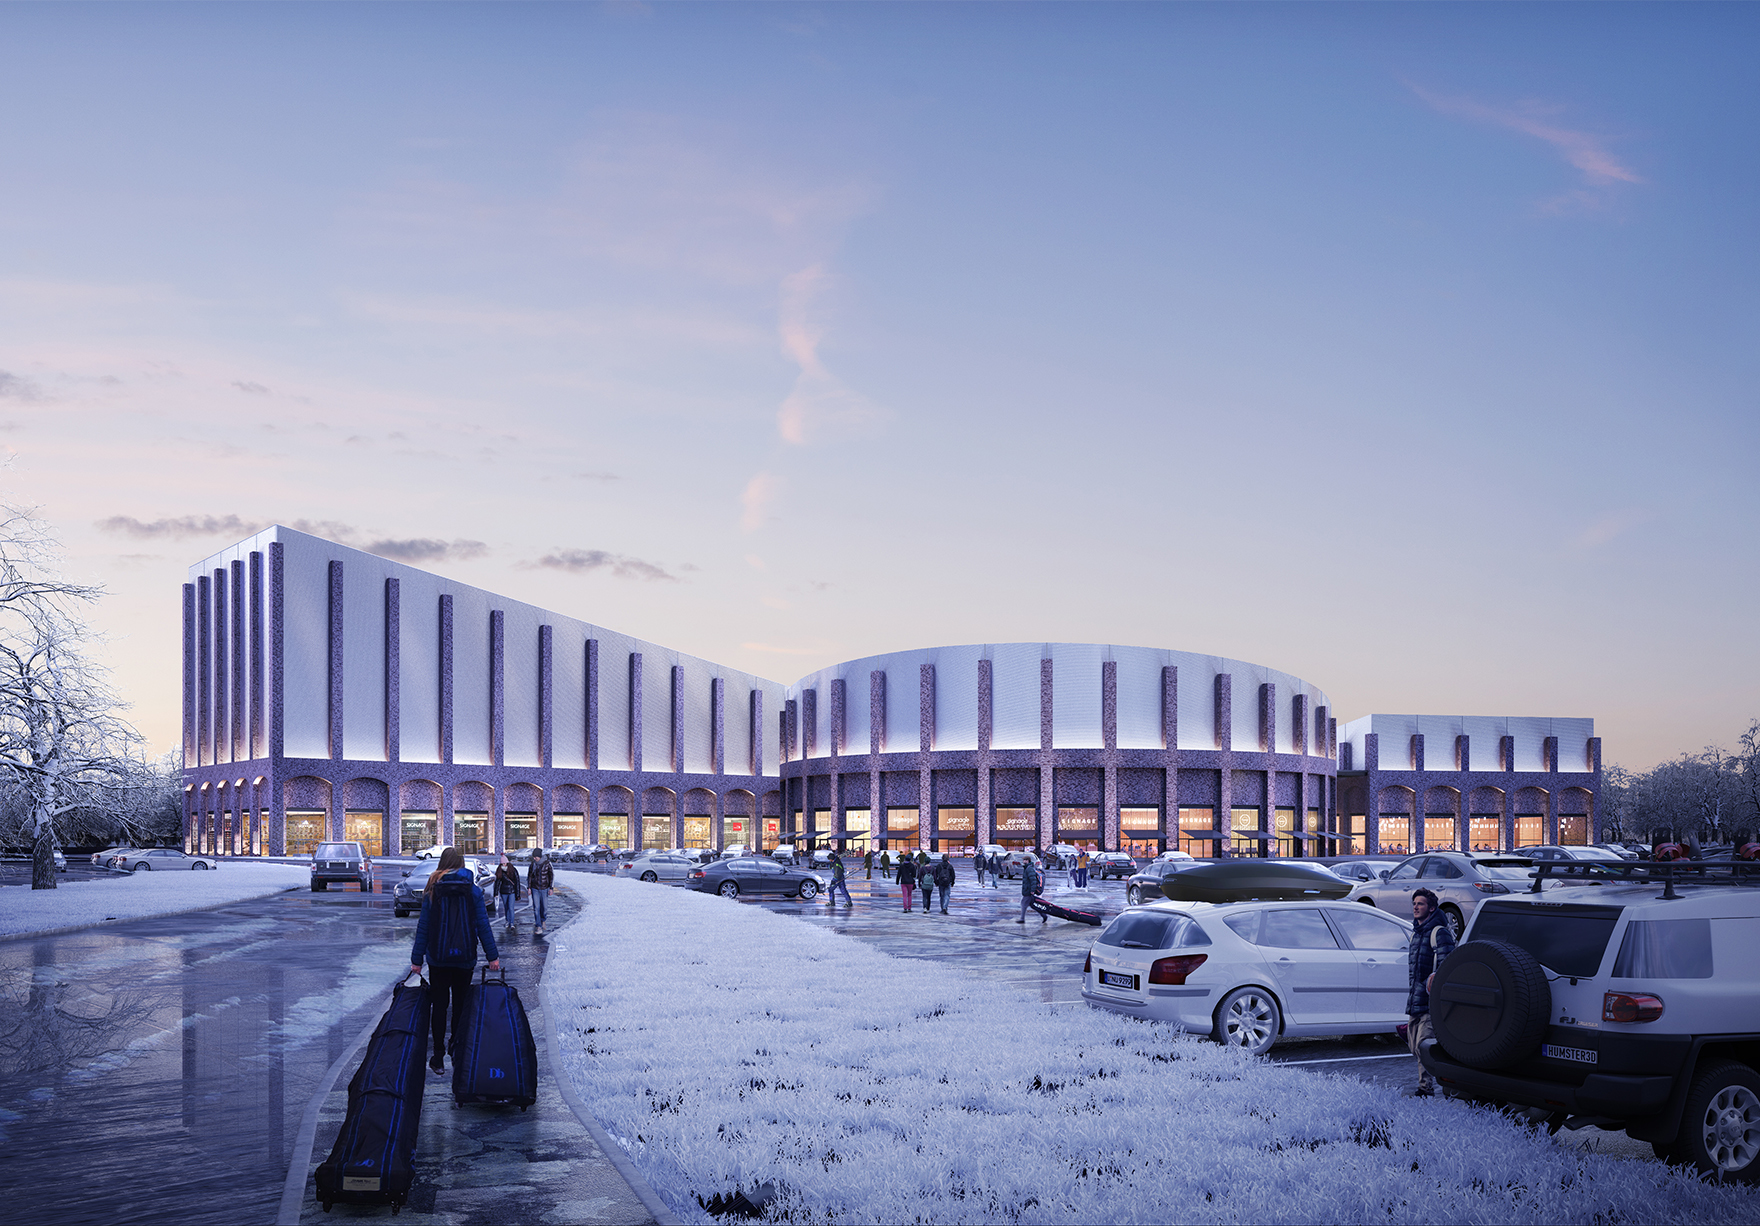 Swindon Snow Centre Indoor Snow Ski Slope Leisure Destination View From Approach Lh